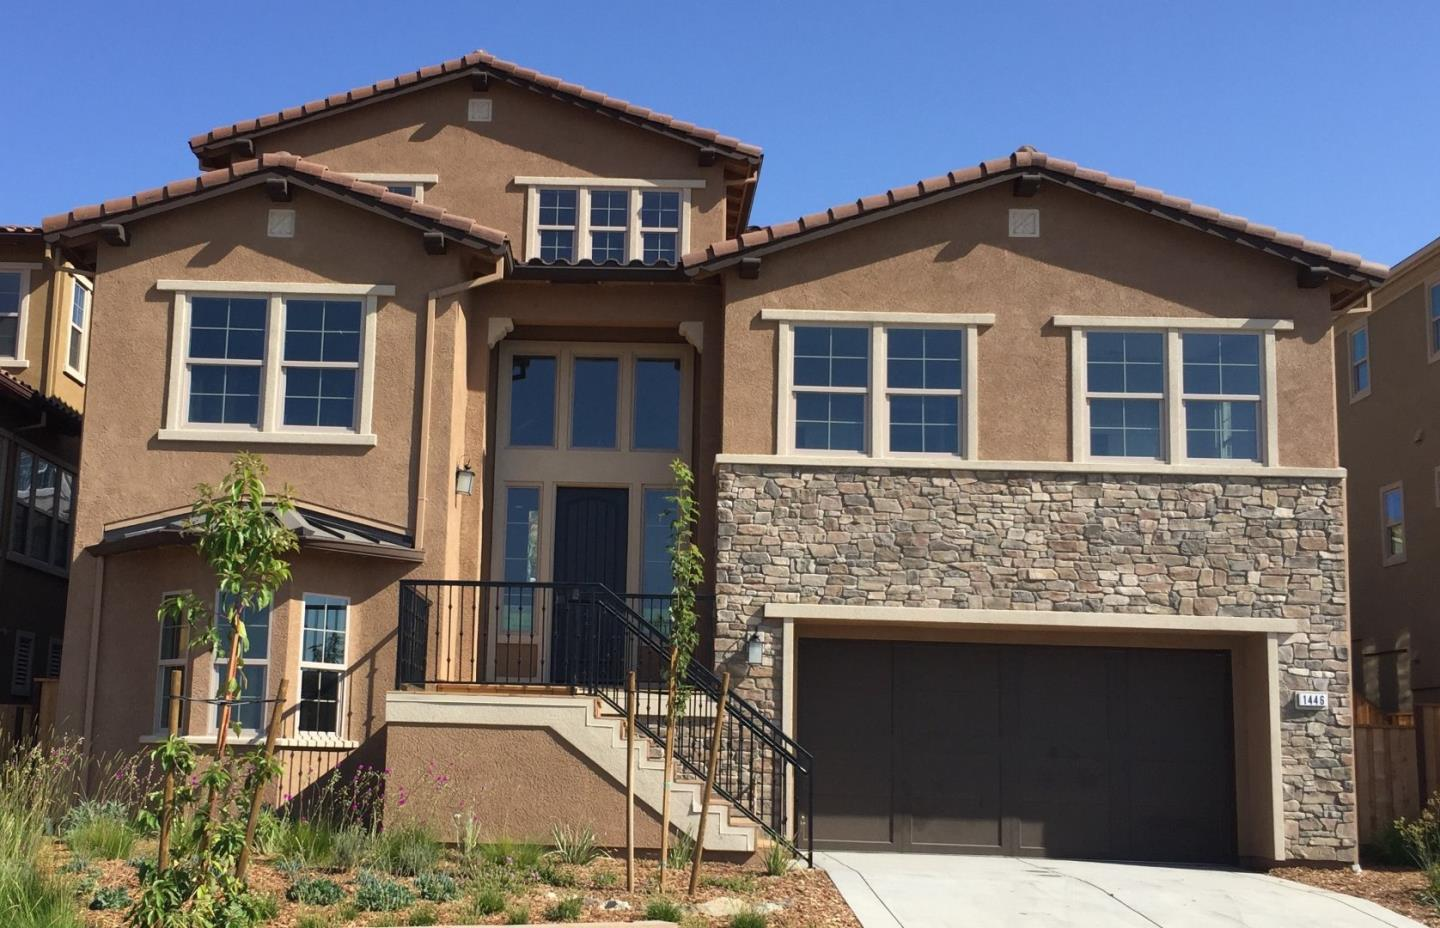 One of Evergreen 5 Bedroom Homes for Sale at 1432 Cottlestone CT